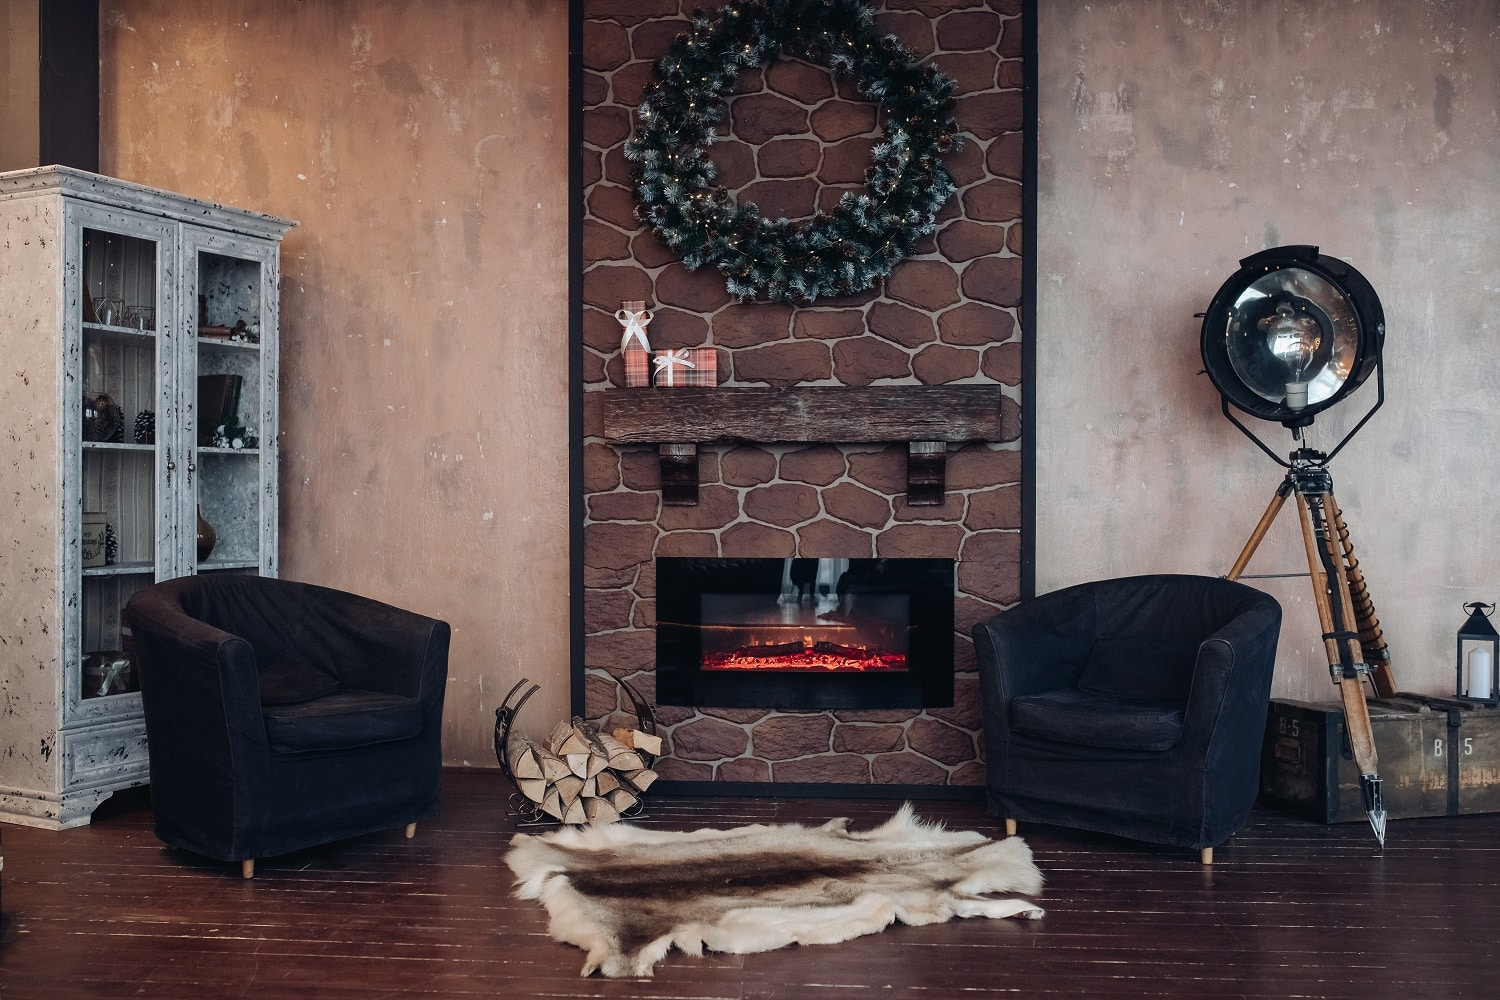 Christmas interior decorated with Christmas wreath made of fir branches. Two armchairs and a genuine animal fur on the floor in front of an electric fireplace.